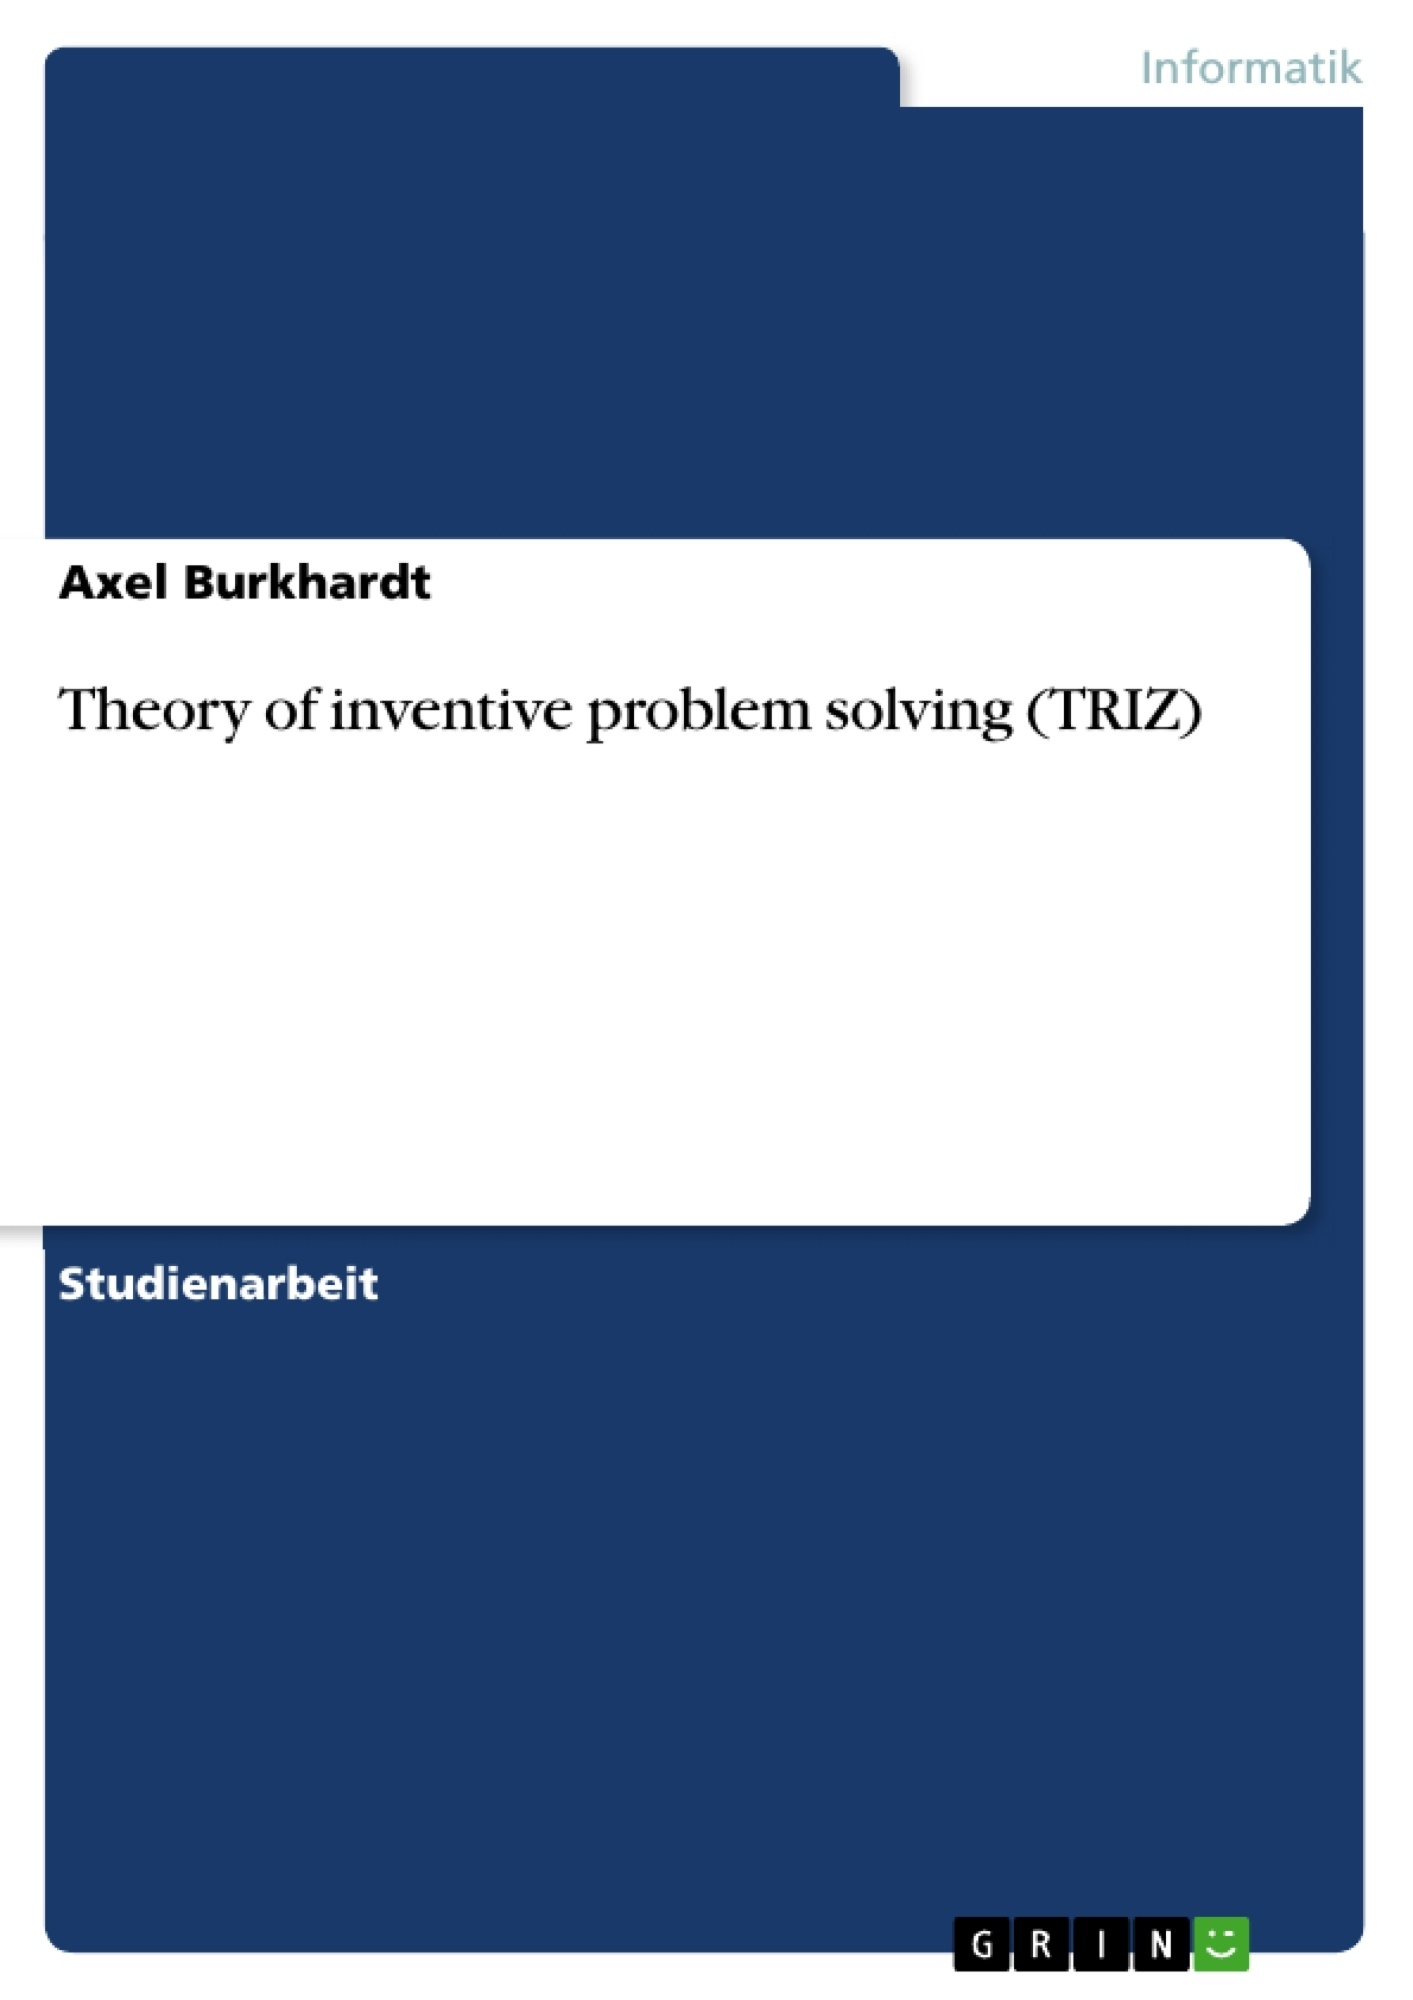 Titel: Theory of inventive problem solving (TRIZ)